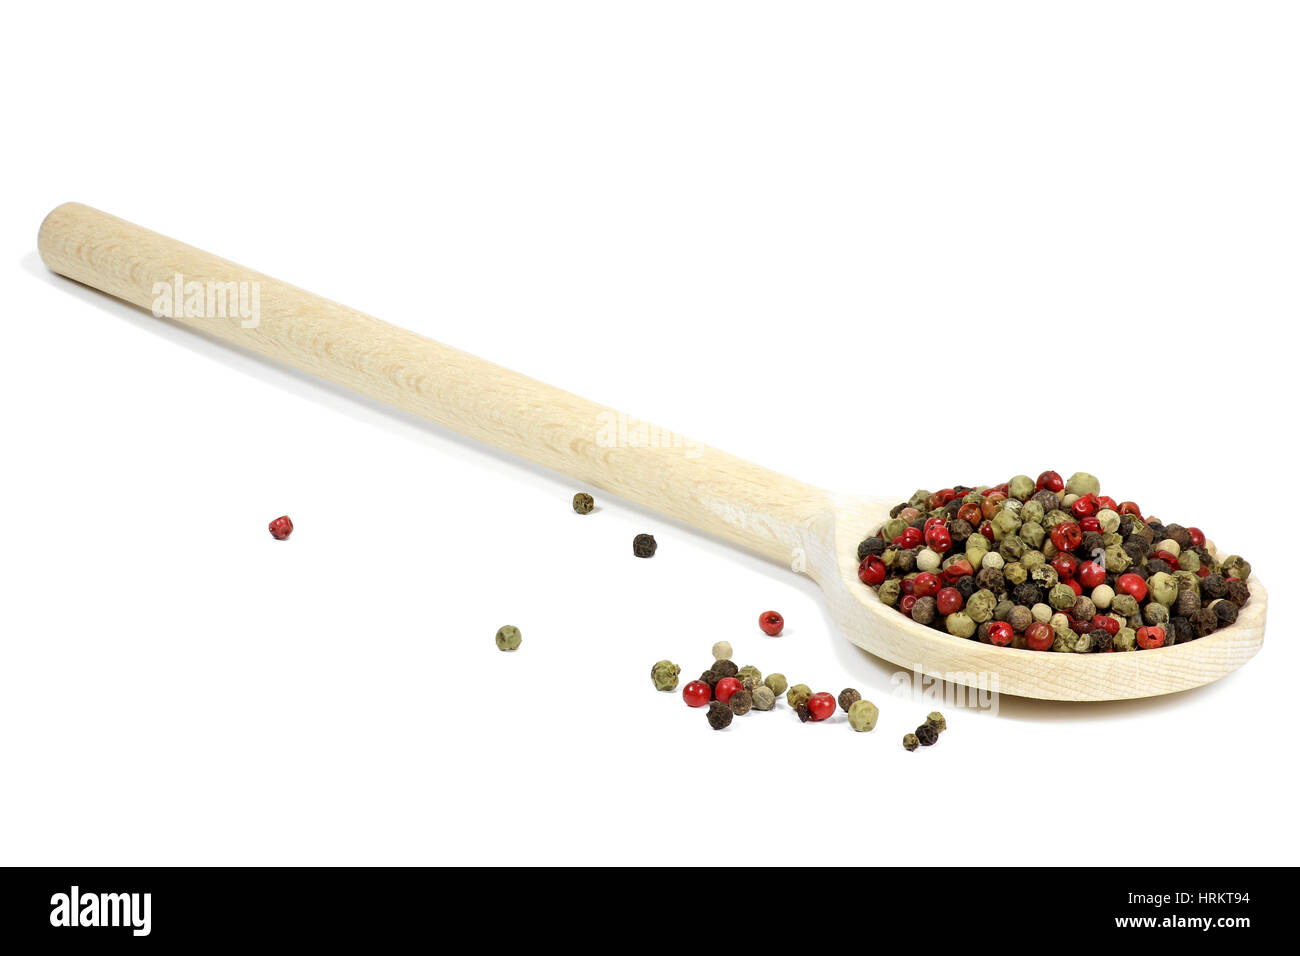 wooden spoon with mixed peppercorns isolated on white background - Stock Image